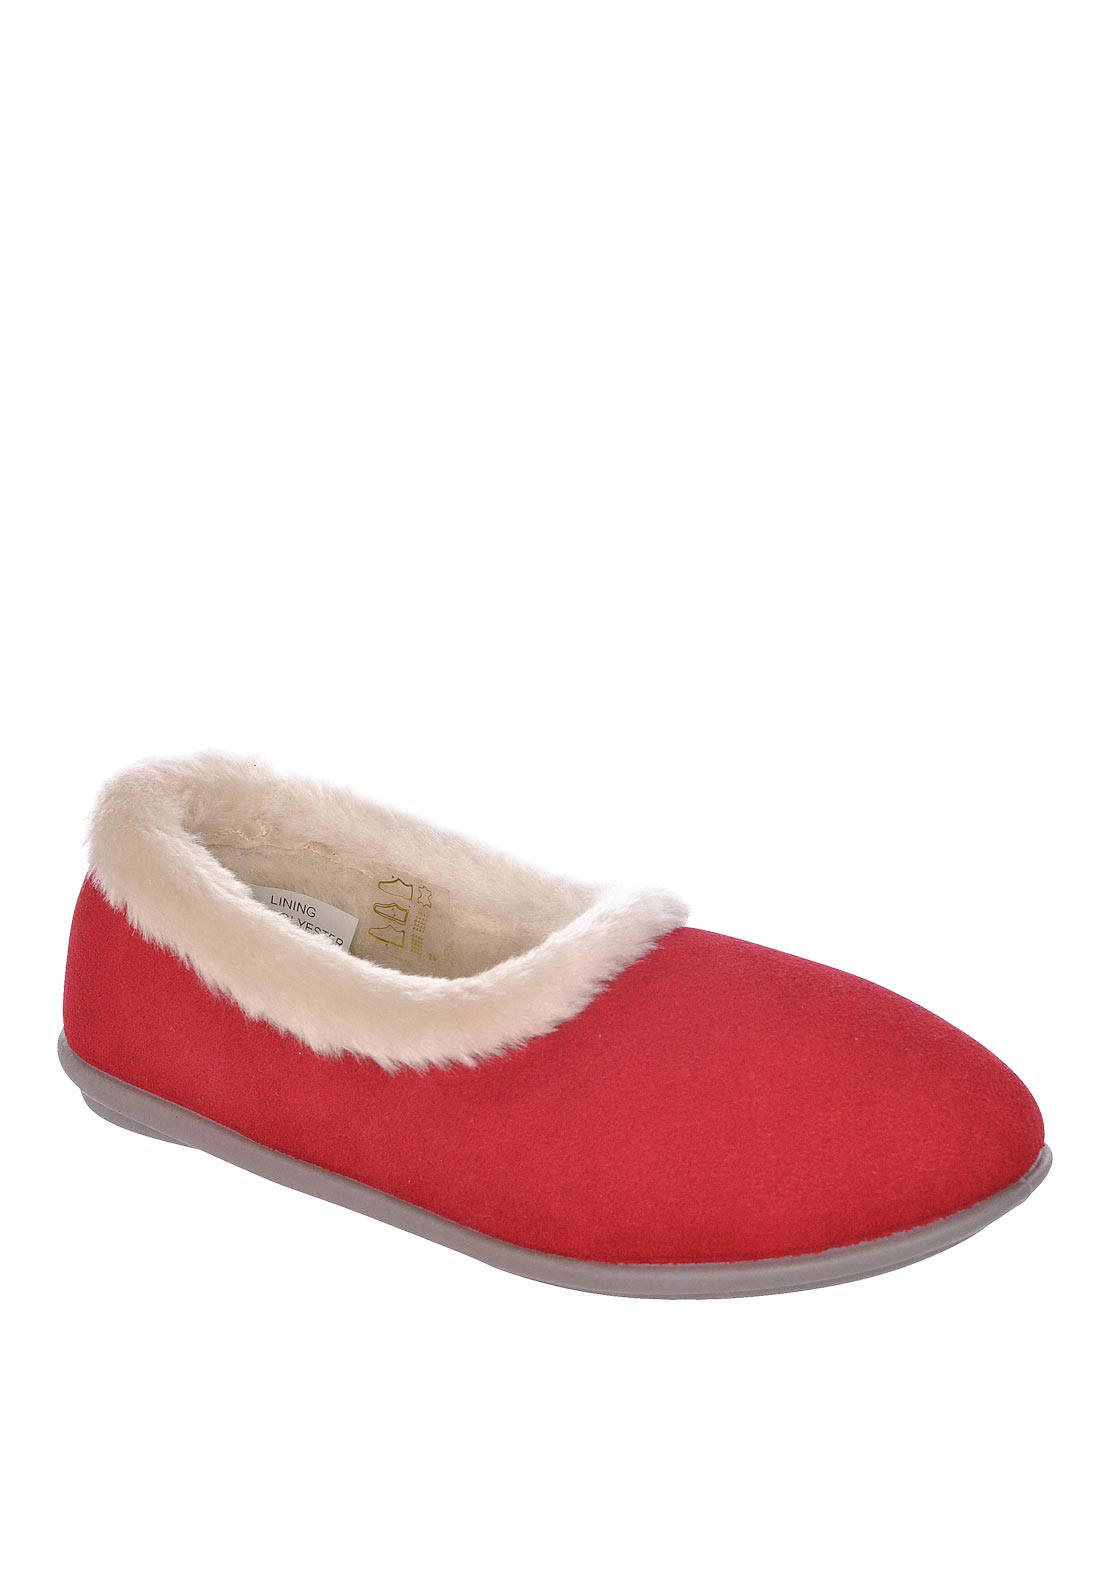 Lotus Womens Blair Faux Fur Slippers, Red